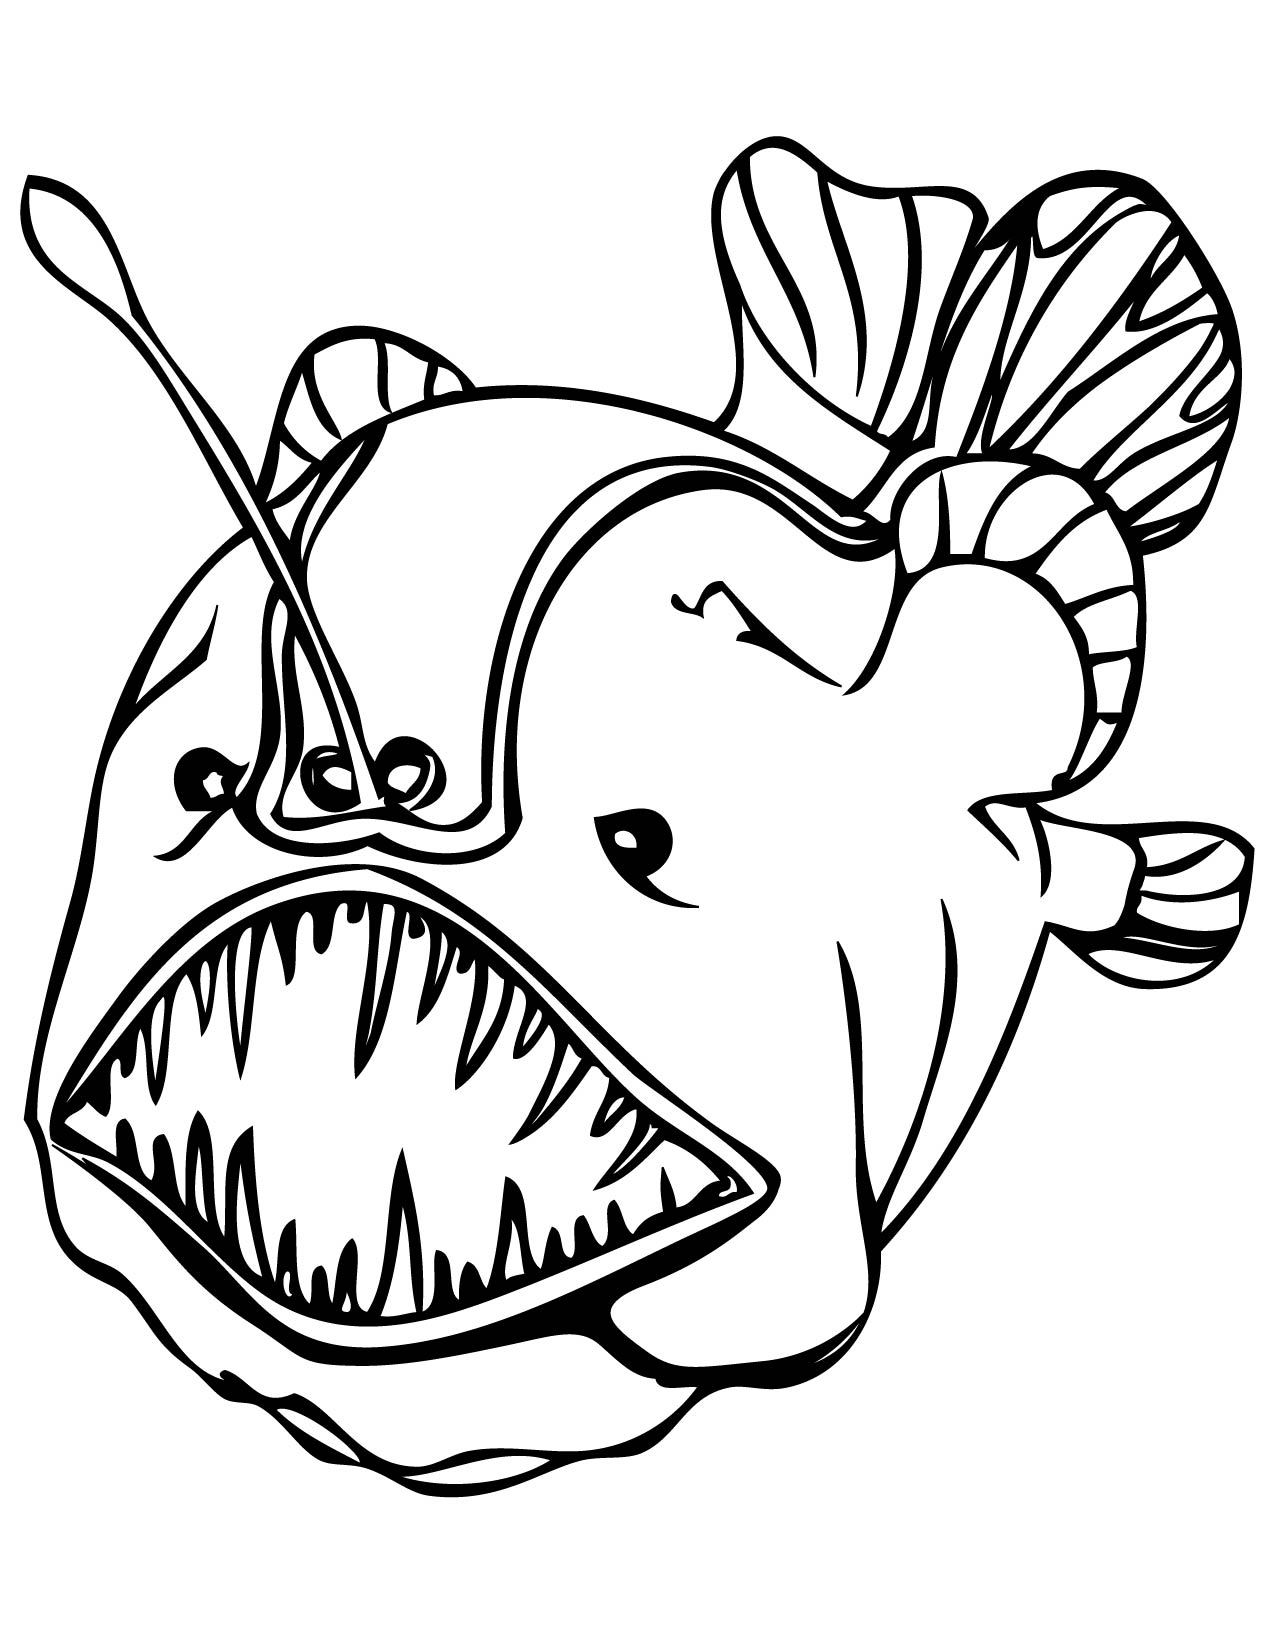 coloring page of a fish - sea fish coloring pages download and print for free